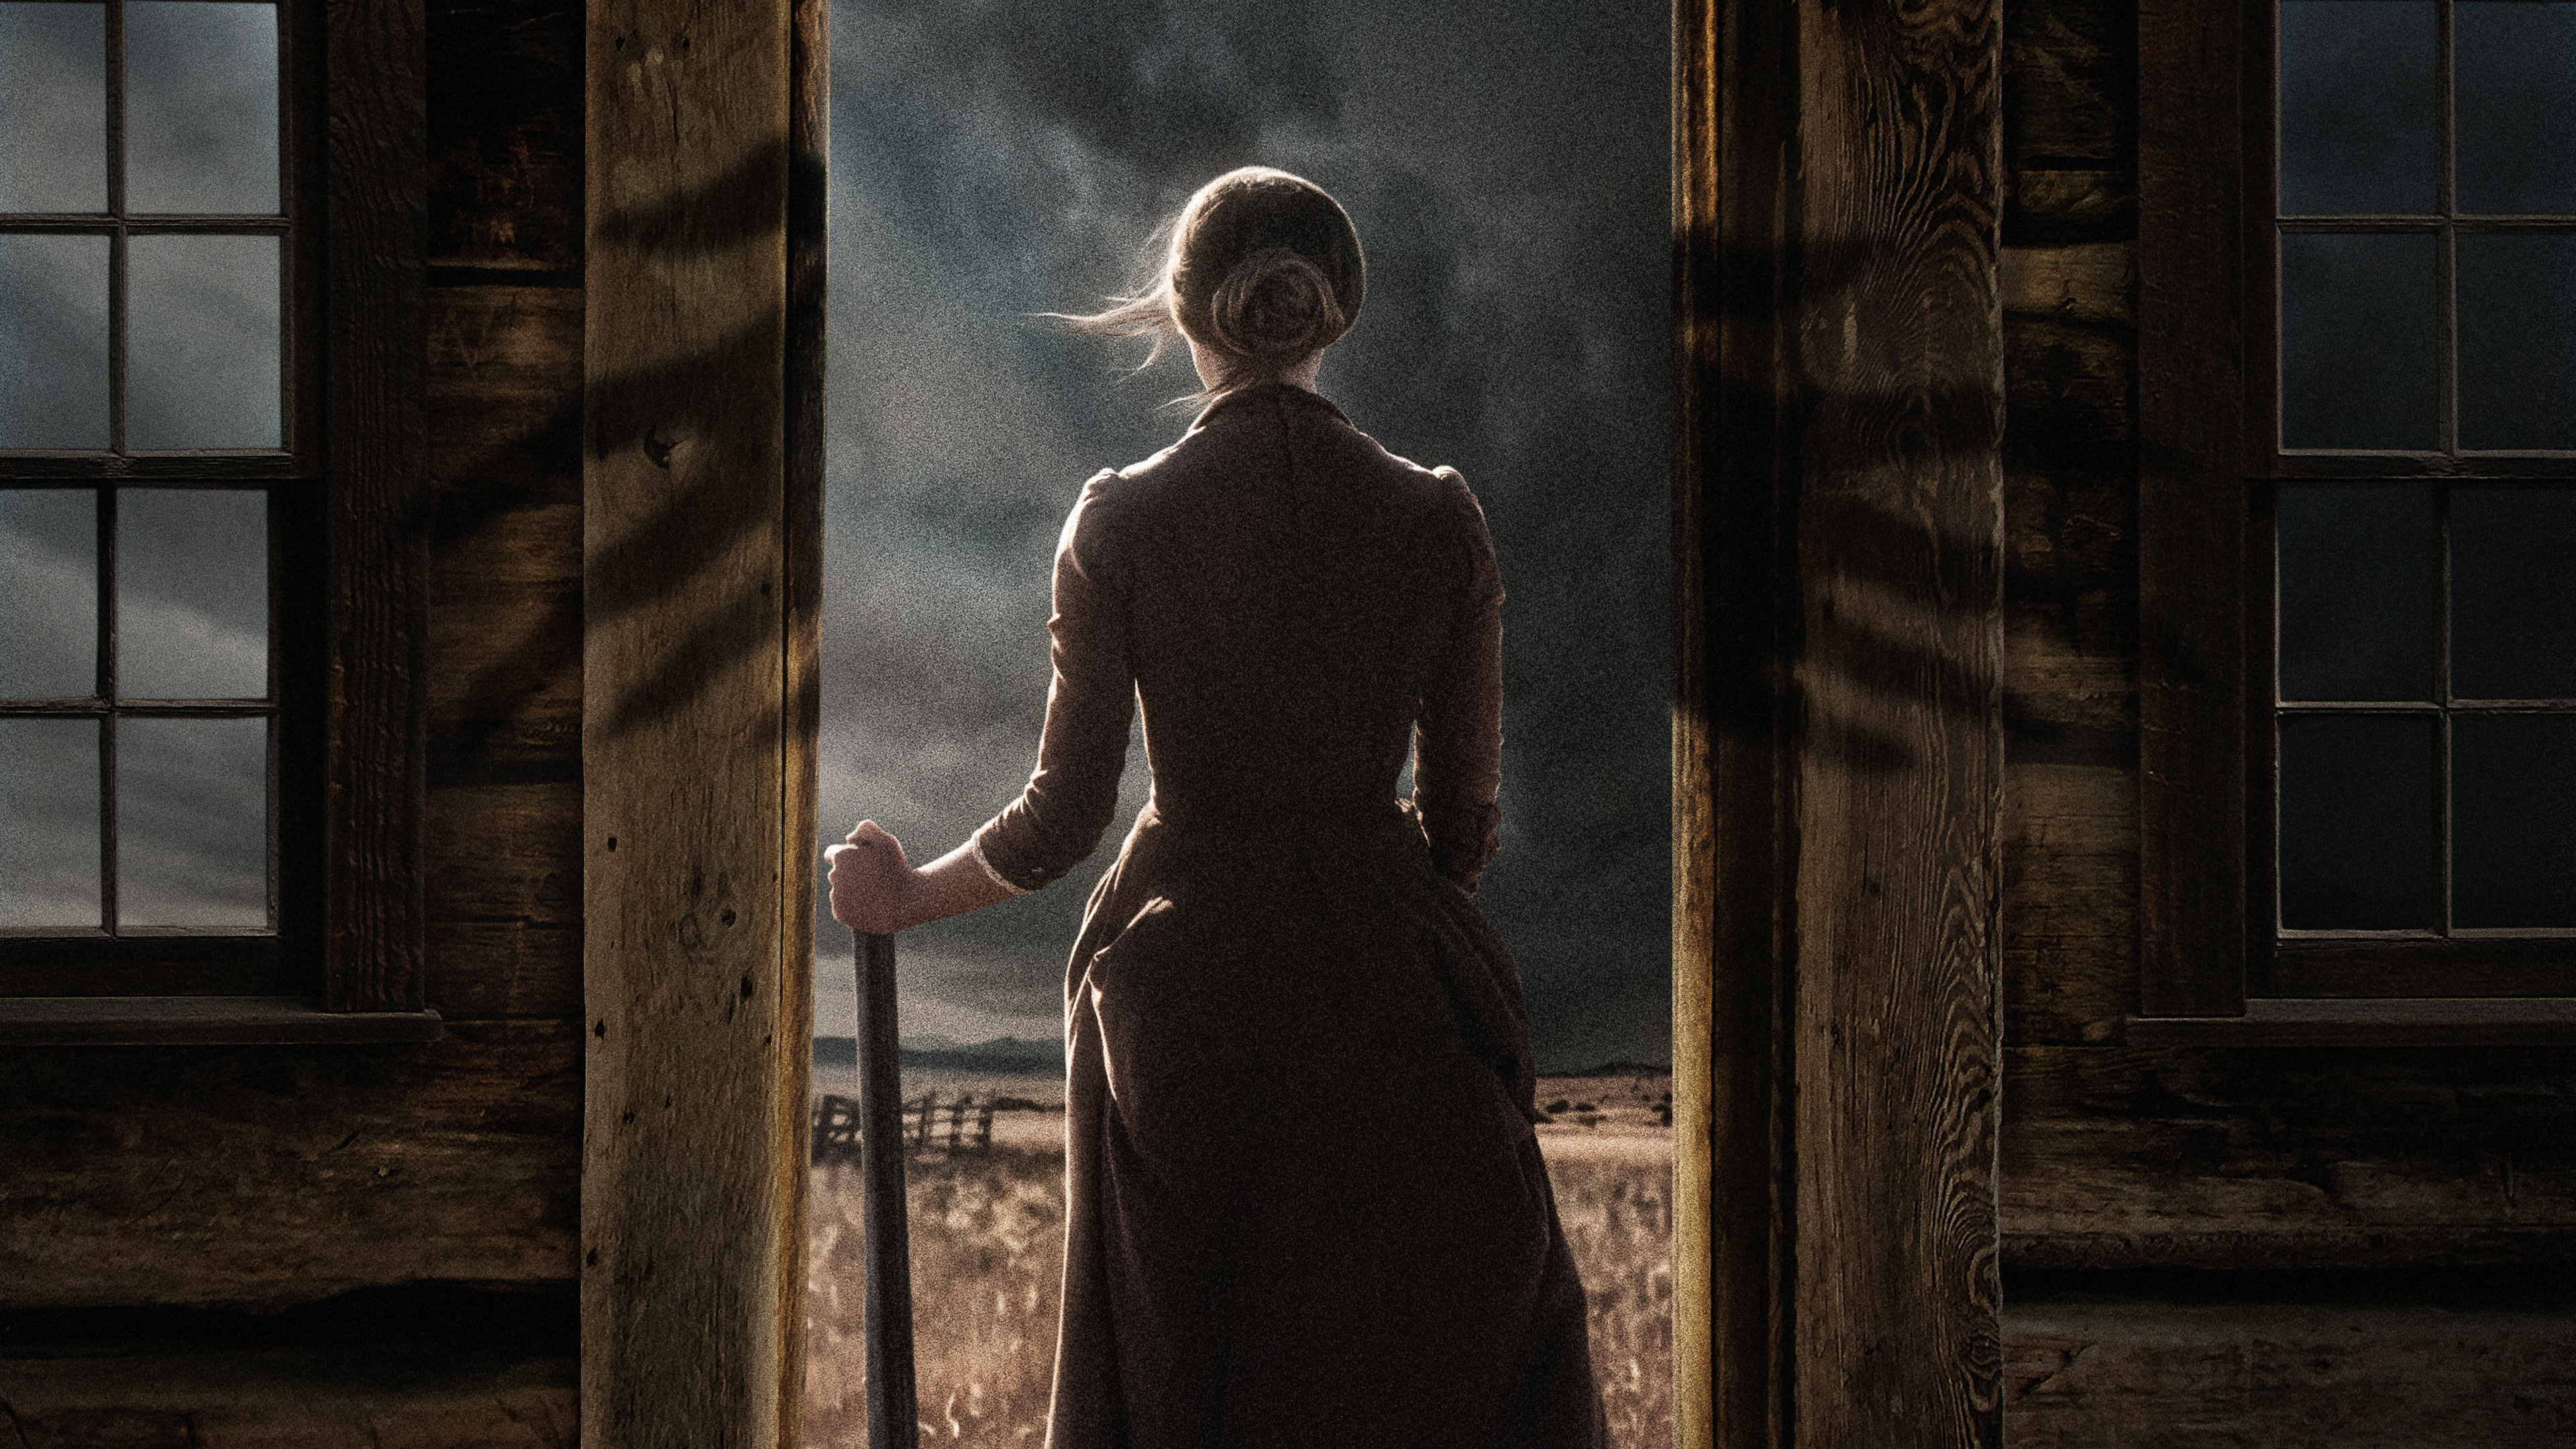 the wind 1560535017 - The Wind - movies wallpapers, hd-wallpapers, 4k-wallpapers